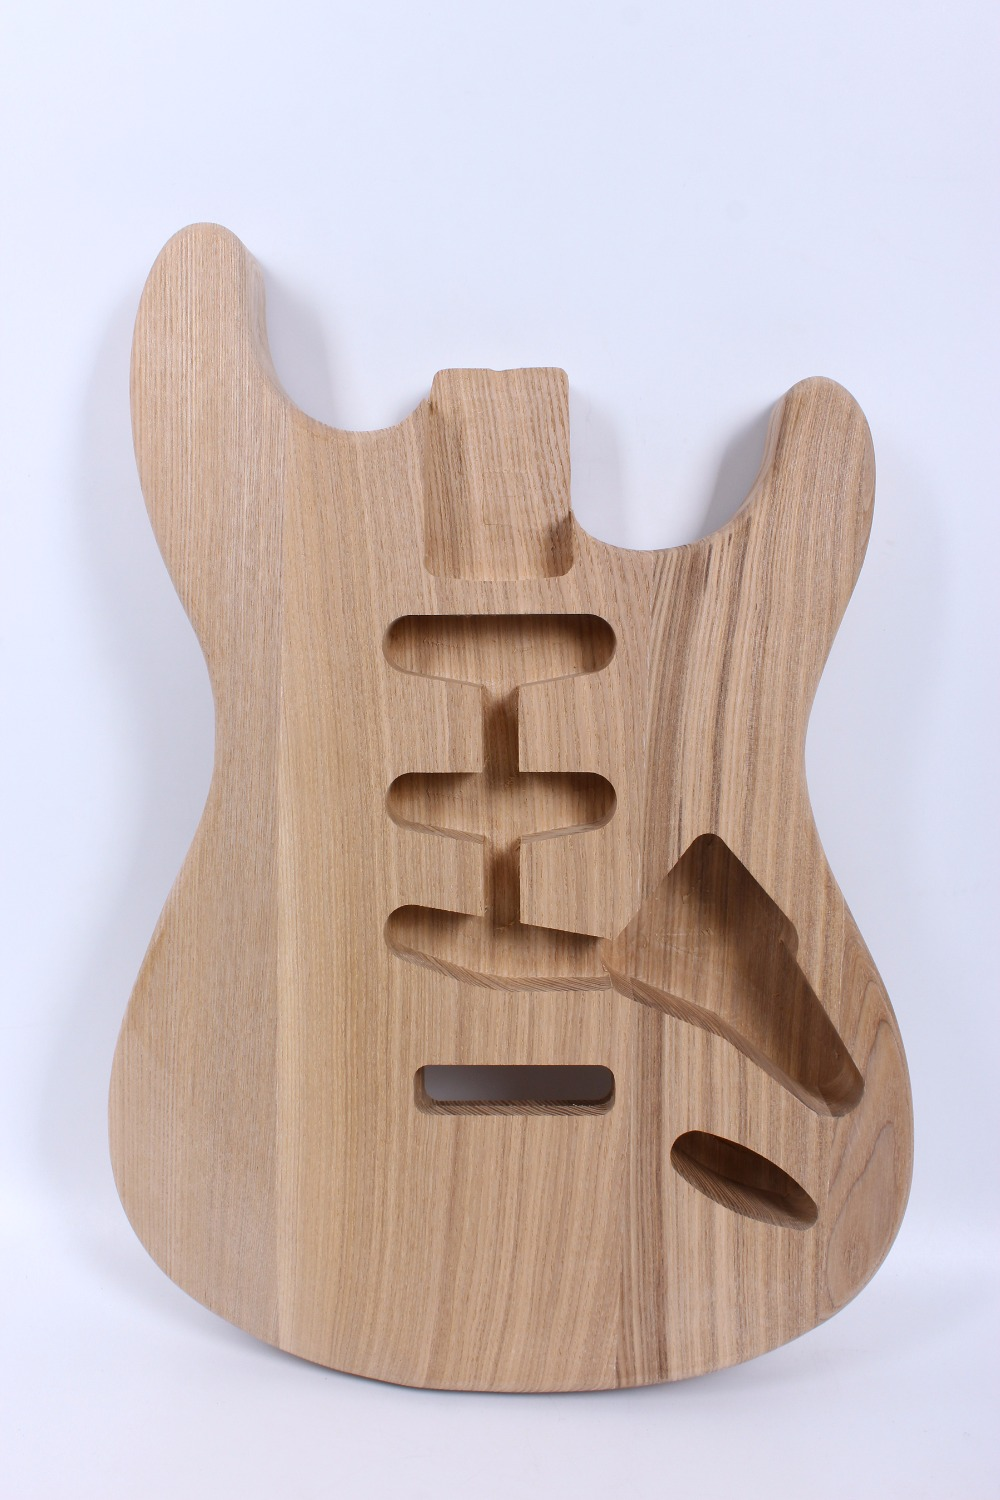 ST guitar body 2.5 Kg 3 piece Manchurian Ash guitar body unfinished electric guitar installation parts opi лак для ногтей classic 15 мл 106 цветов my vampire is buff